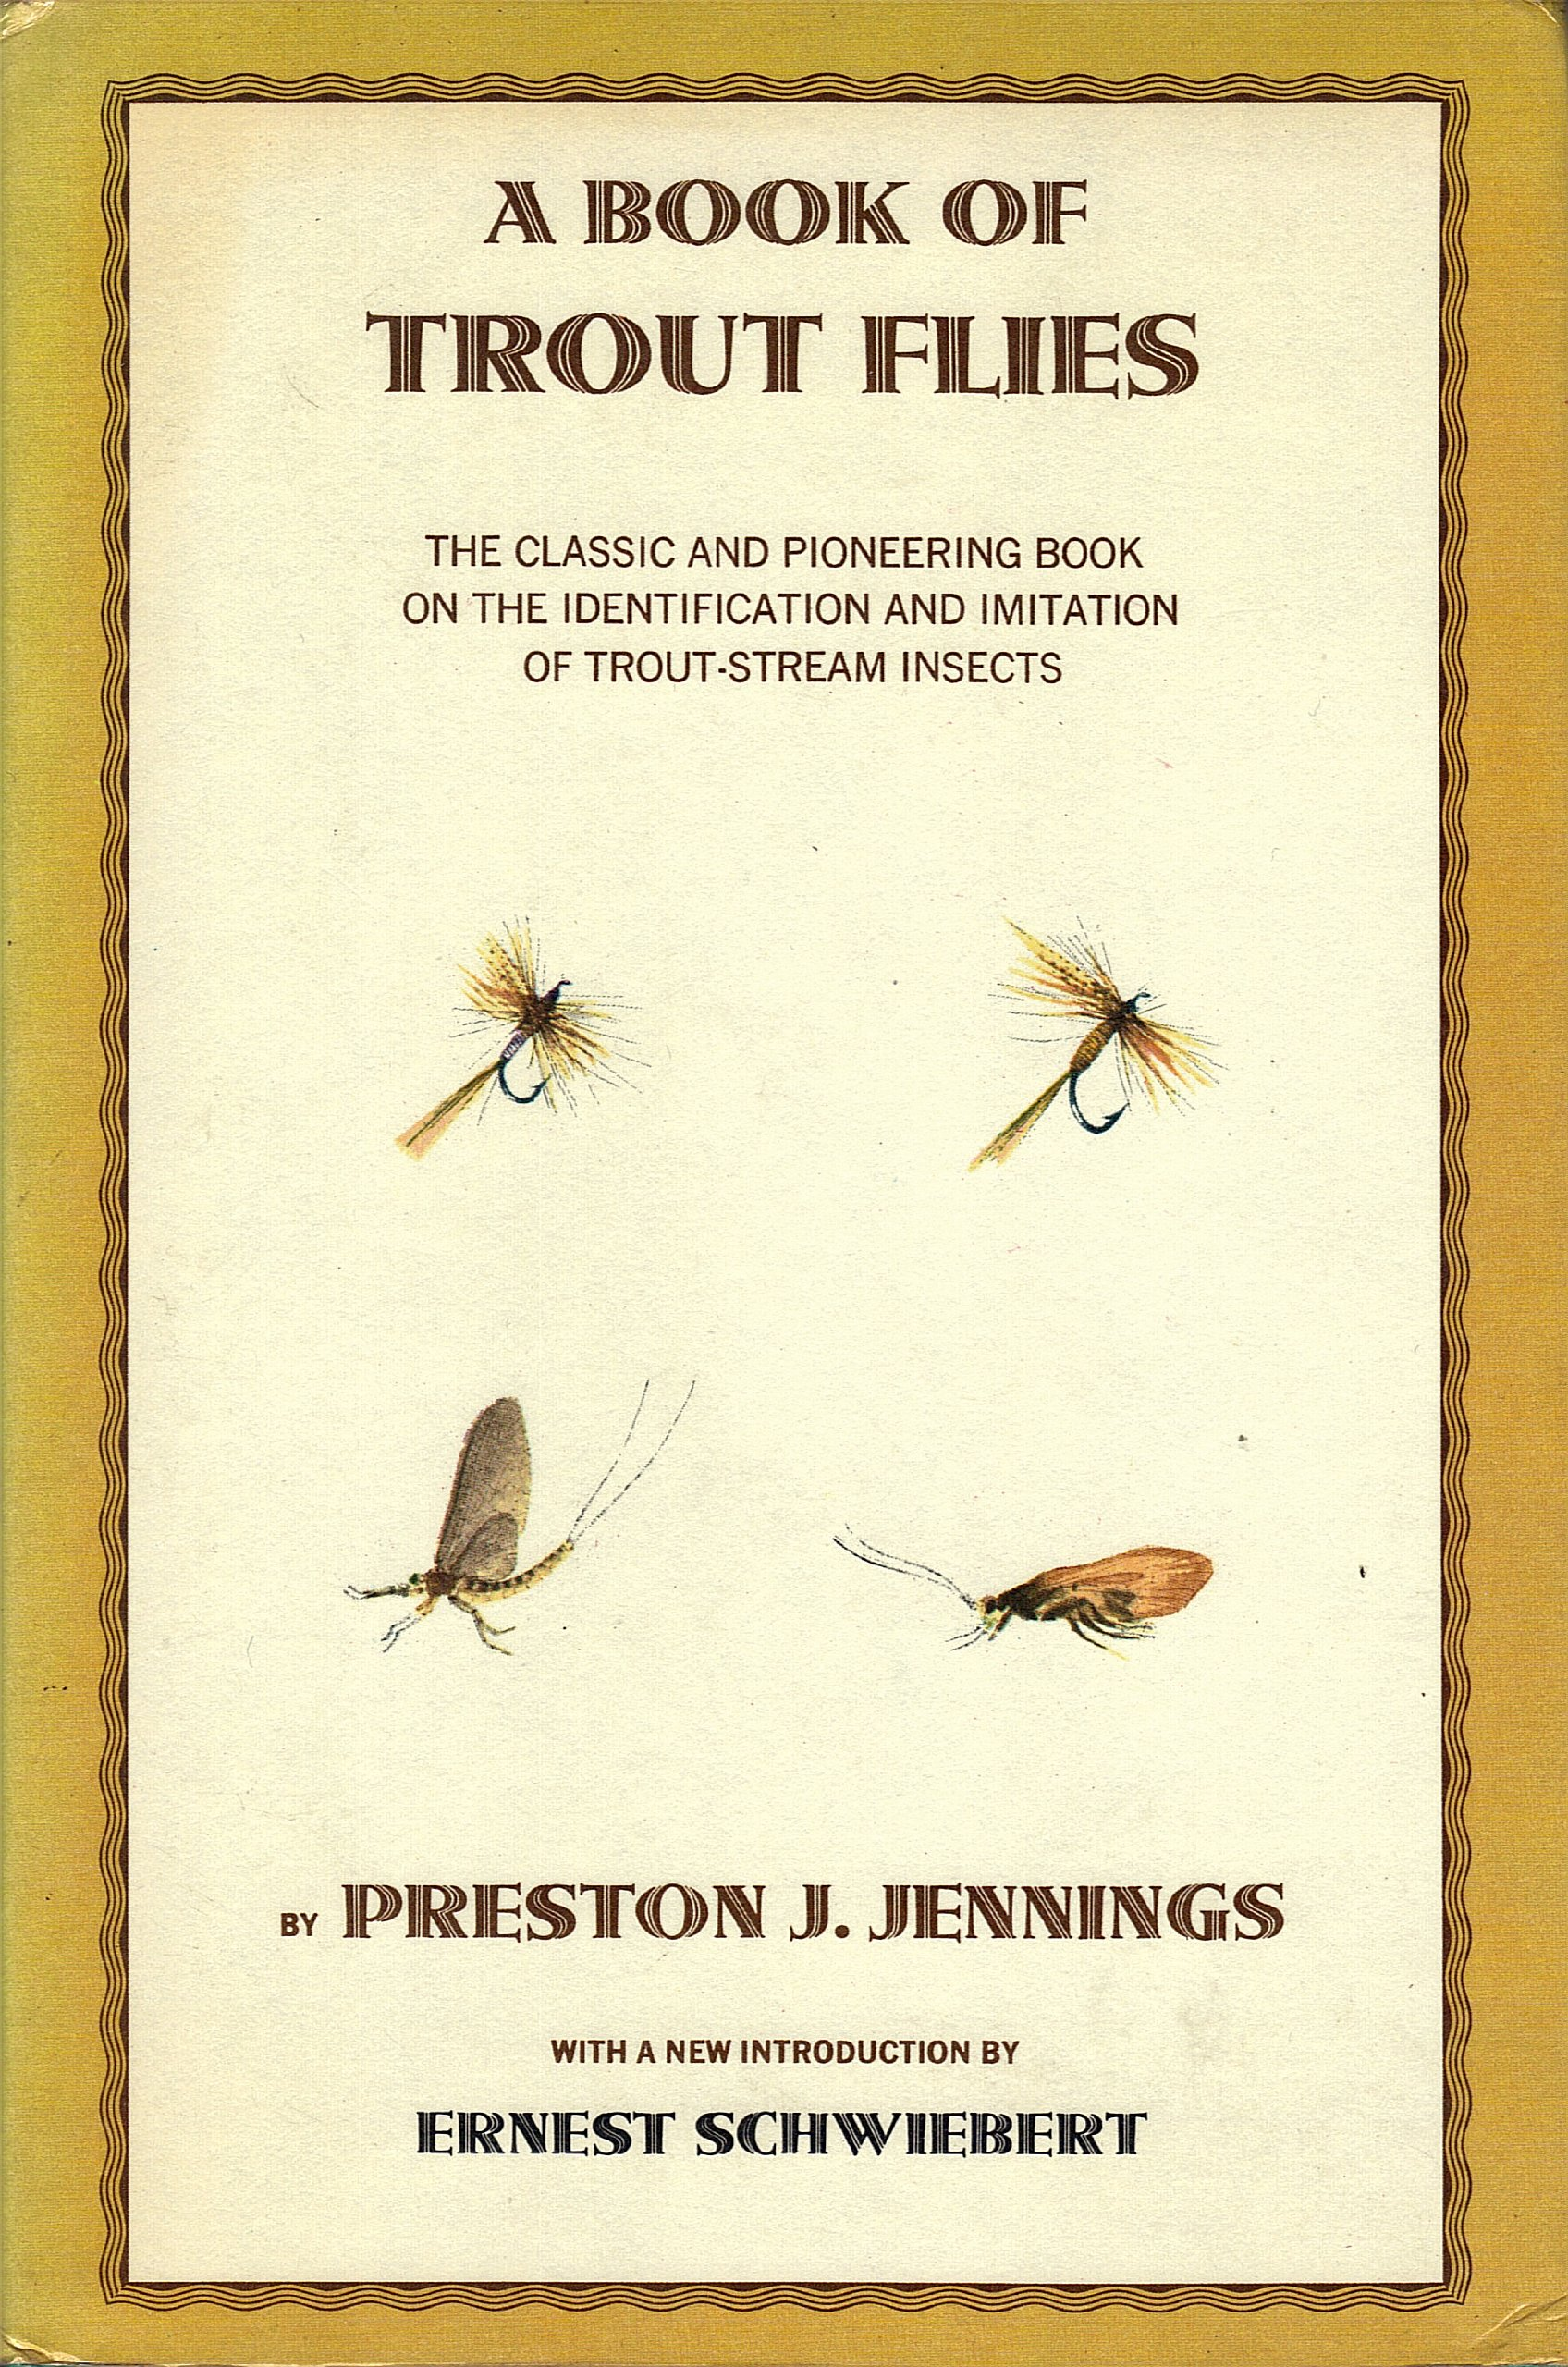 A Book Of Trout Flies: The Classic And Pioneering Book On The Identification And Imitation Of Trout-Stream Insects, Preston Jennings